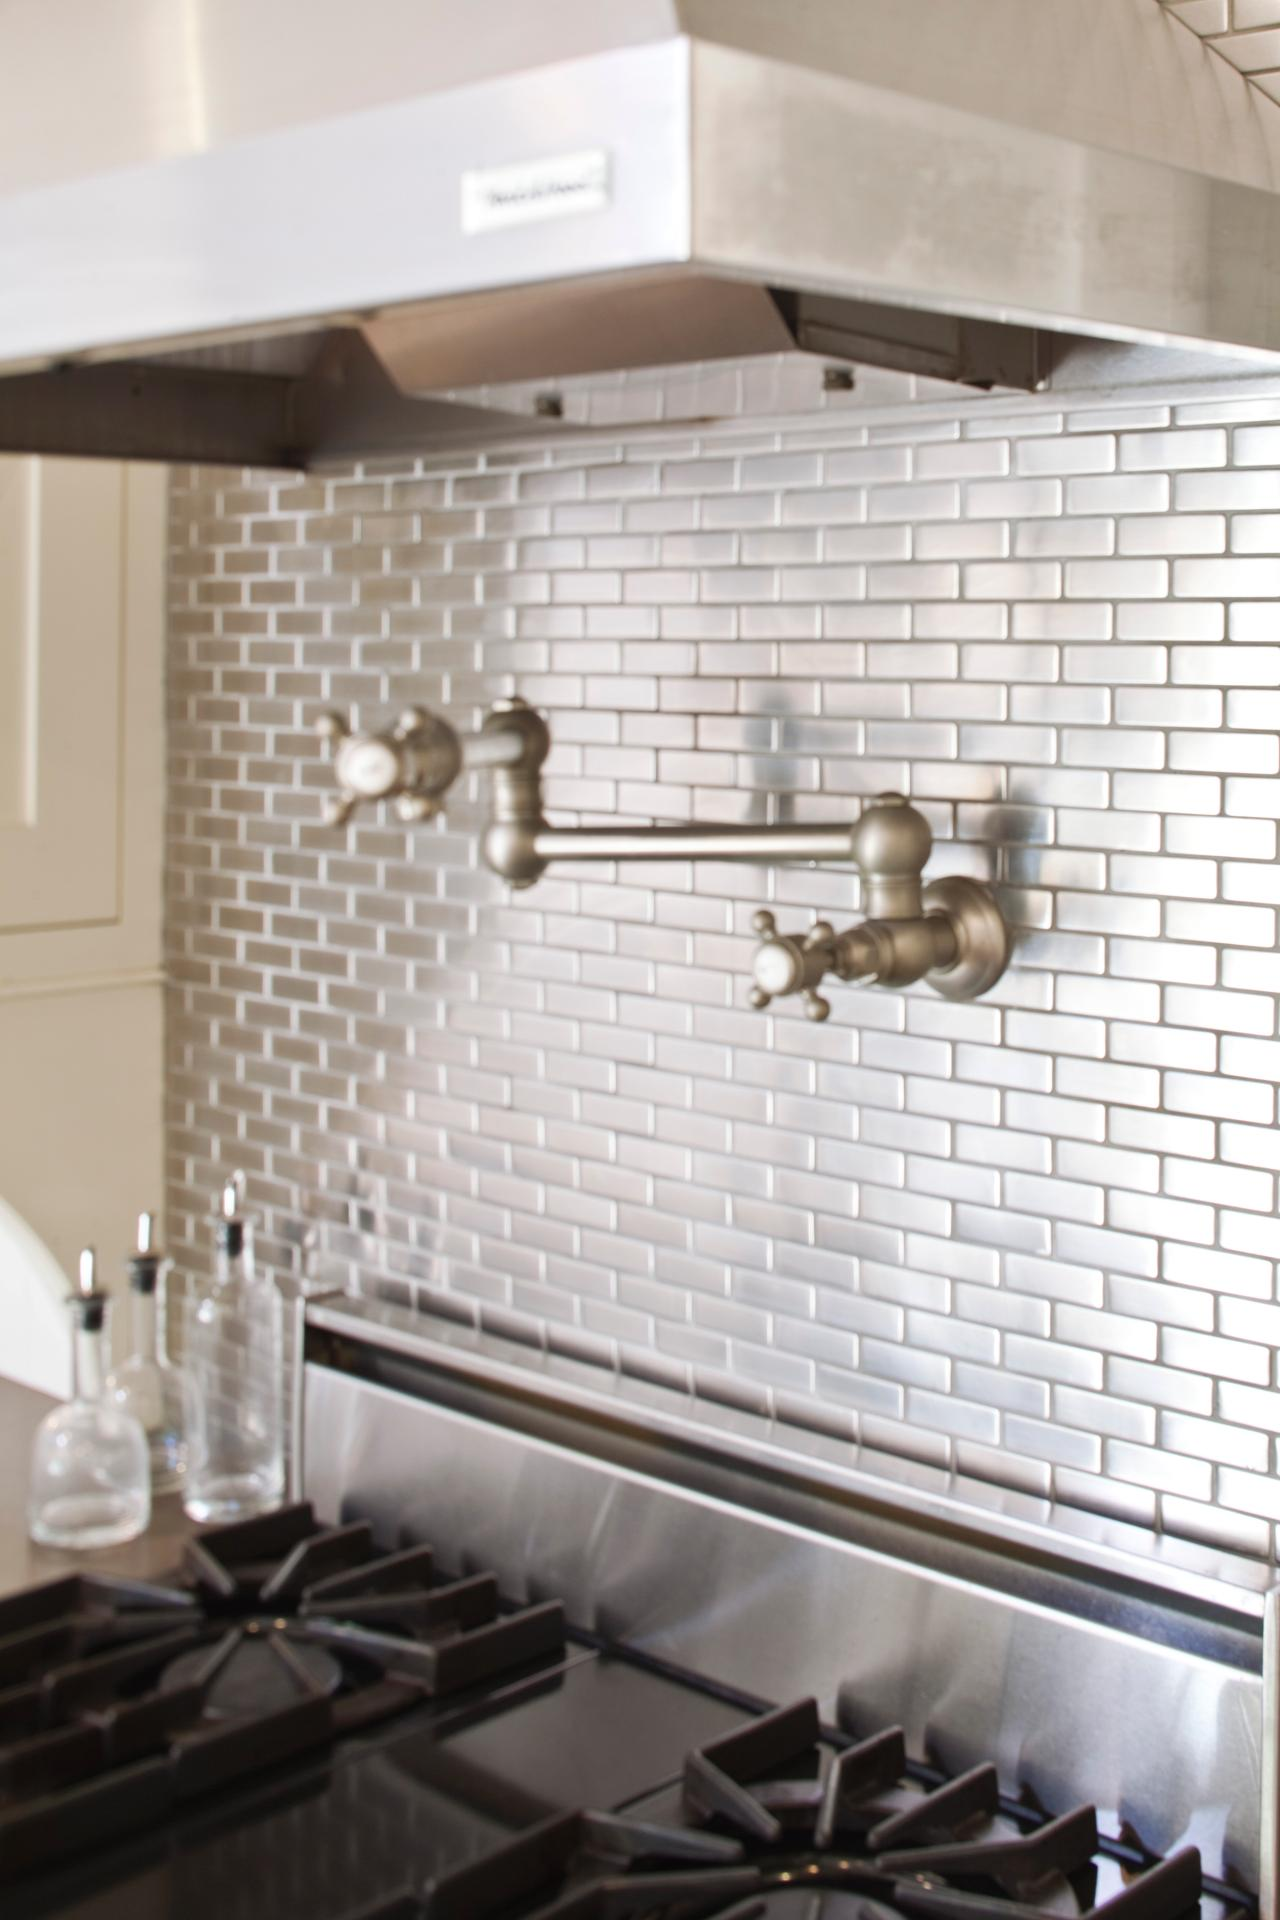 Make A Splash With These Backsplash Designs Bkc Kitchen